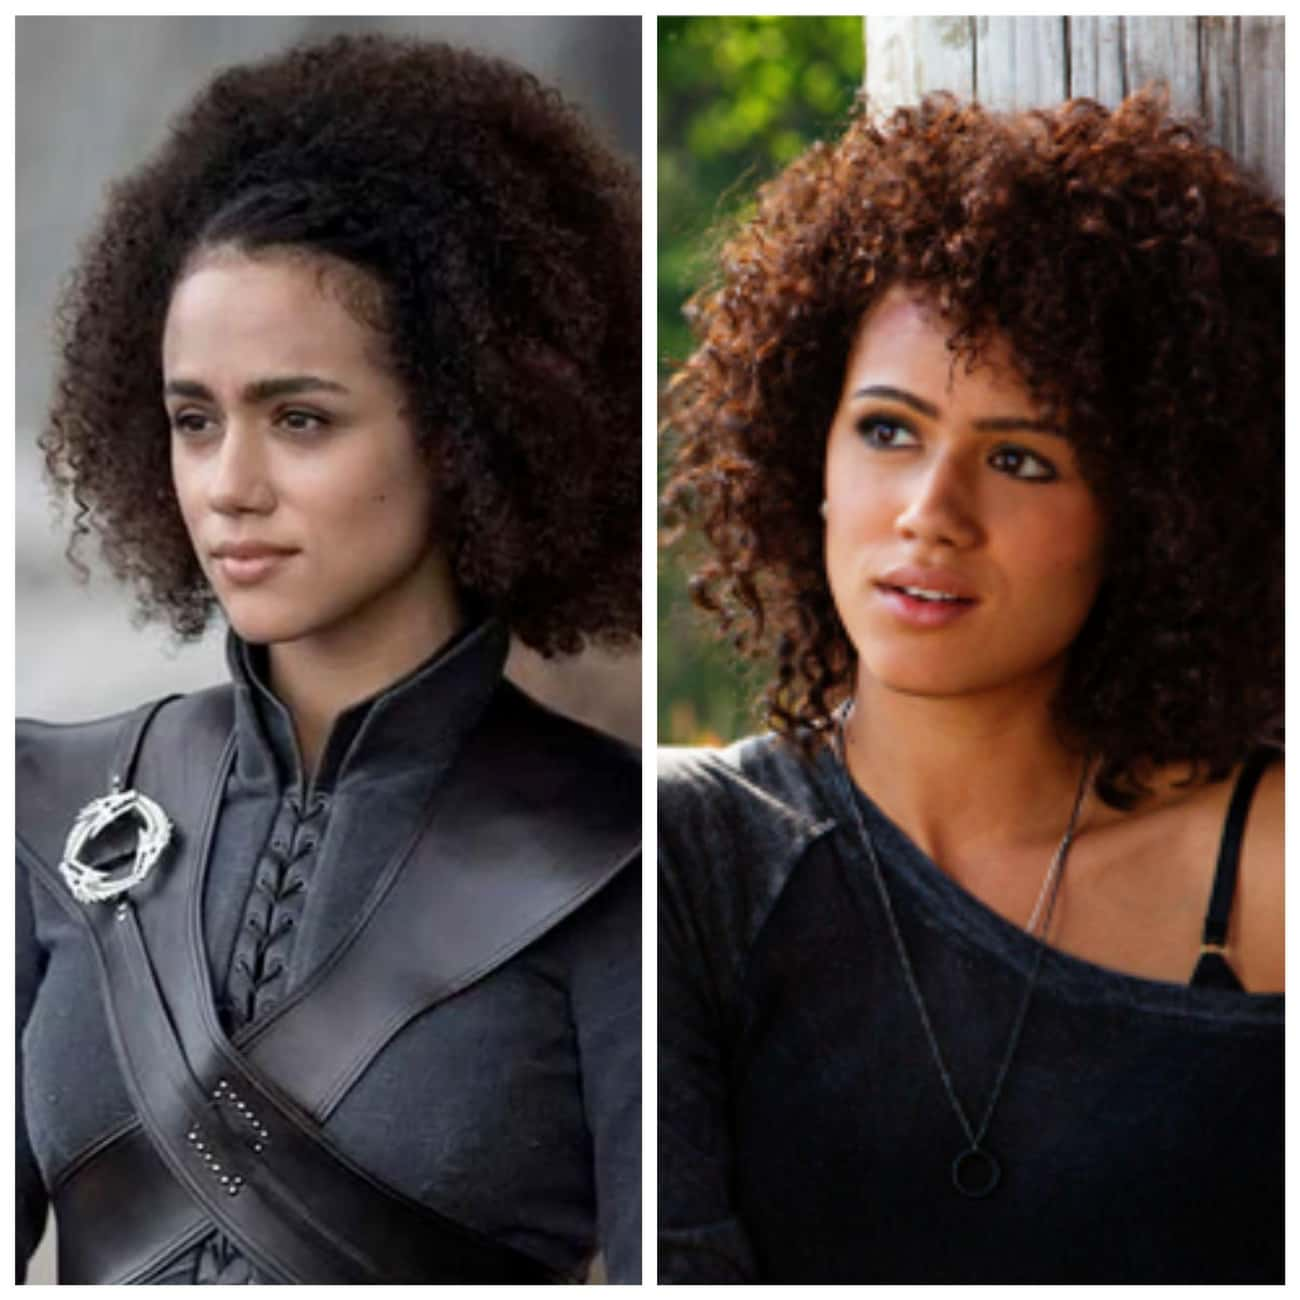 Nathalie Emmanuel - Furious 7 is listed (or ranked) 3 on the list Times You've Seen the GoT Actors Before